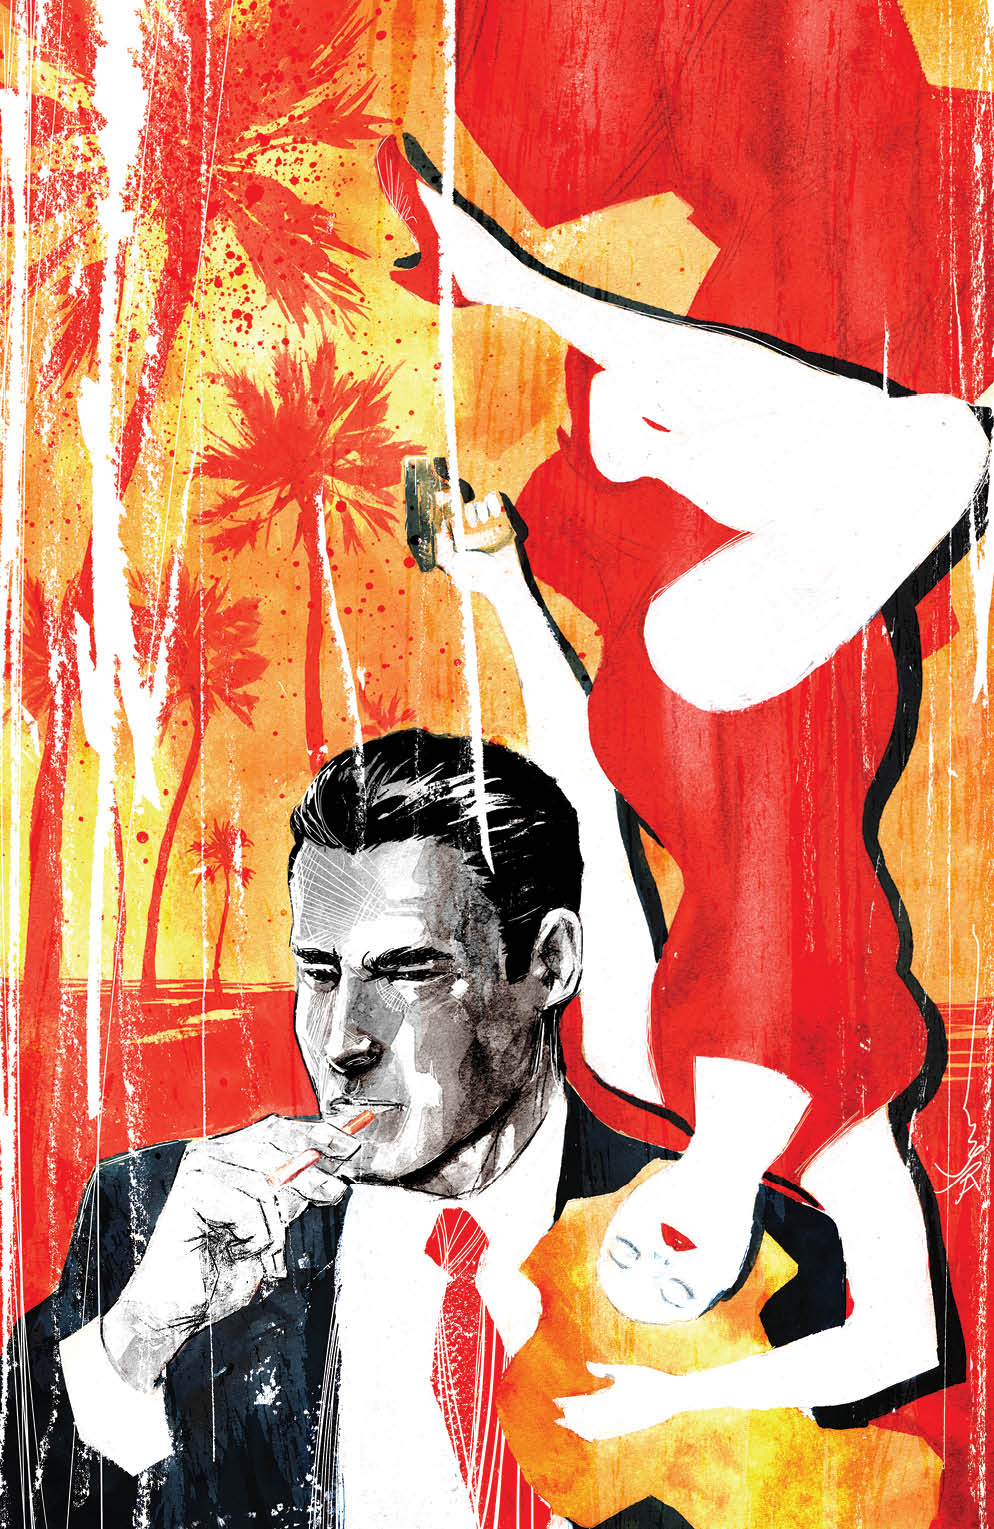 Hit: 1957 #1 Incentive Cover